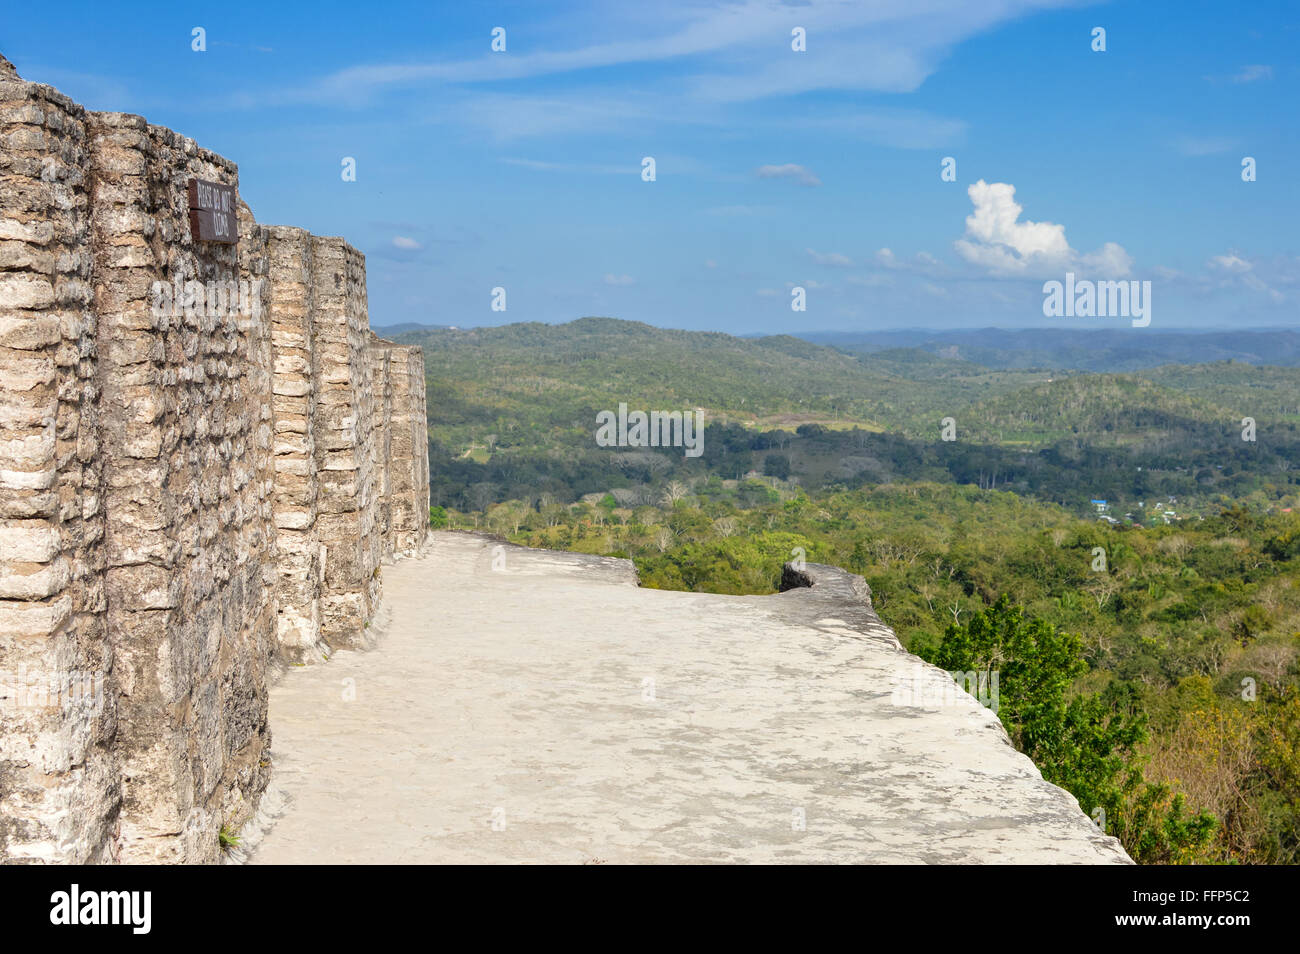 Xunantunich archaeological site of Maya civilization with some landscapes view, Cayo District, Belize - Stock Image